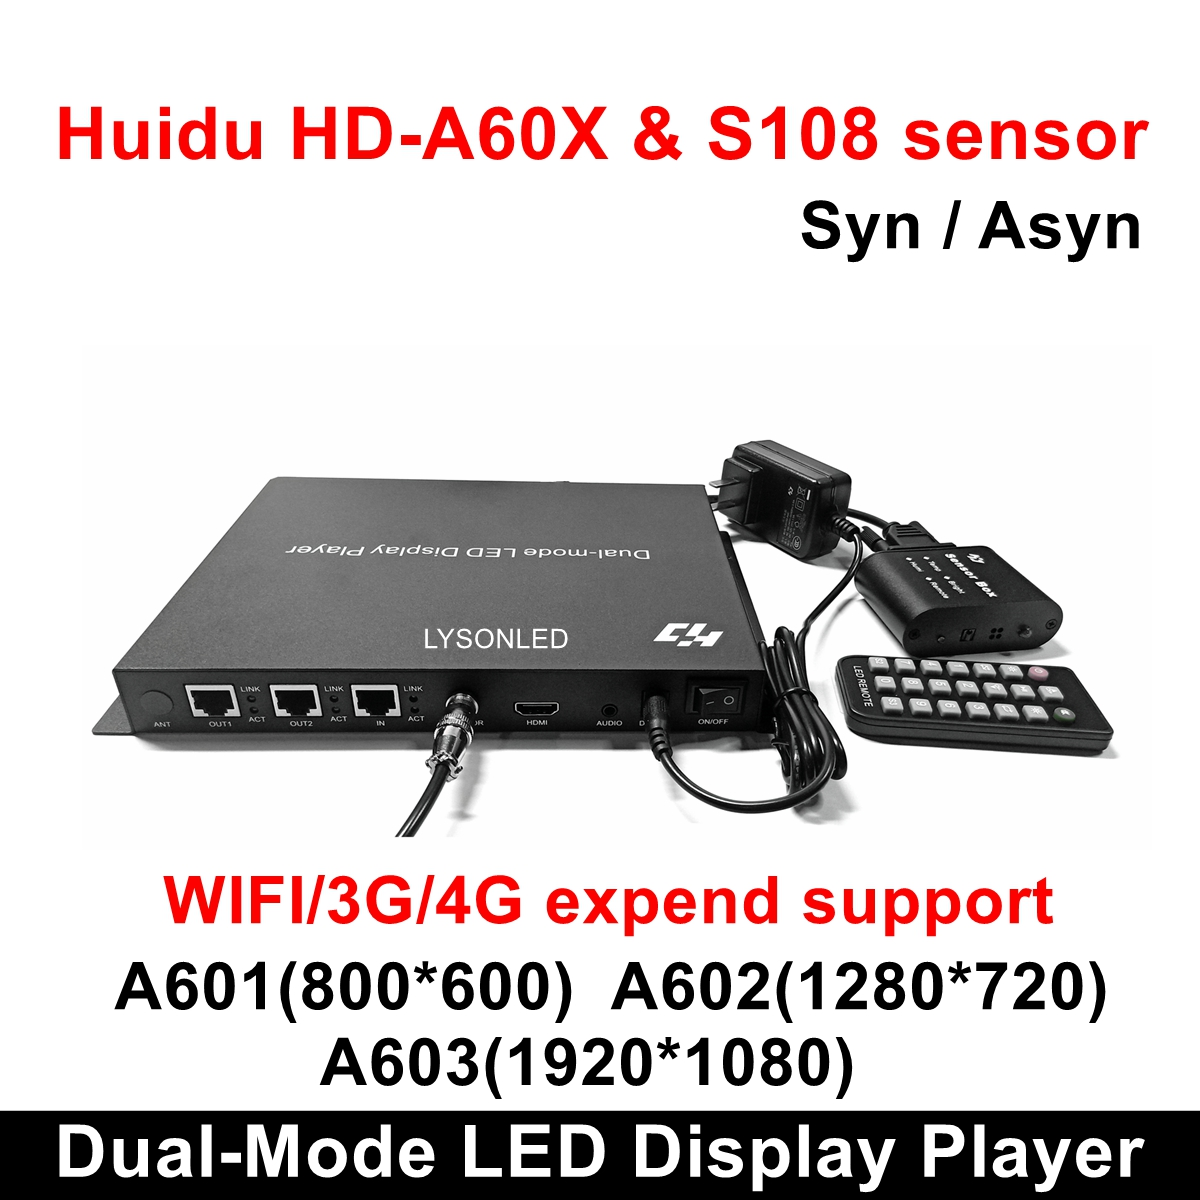 Huidu HD-A601 HD-A602 HD-A603 Full Color Sync-async Dual-mode LED Display Player With S108 Sensor Box,3G/4G/WiFi Expend Support